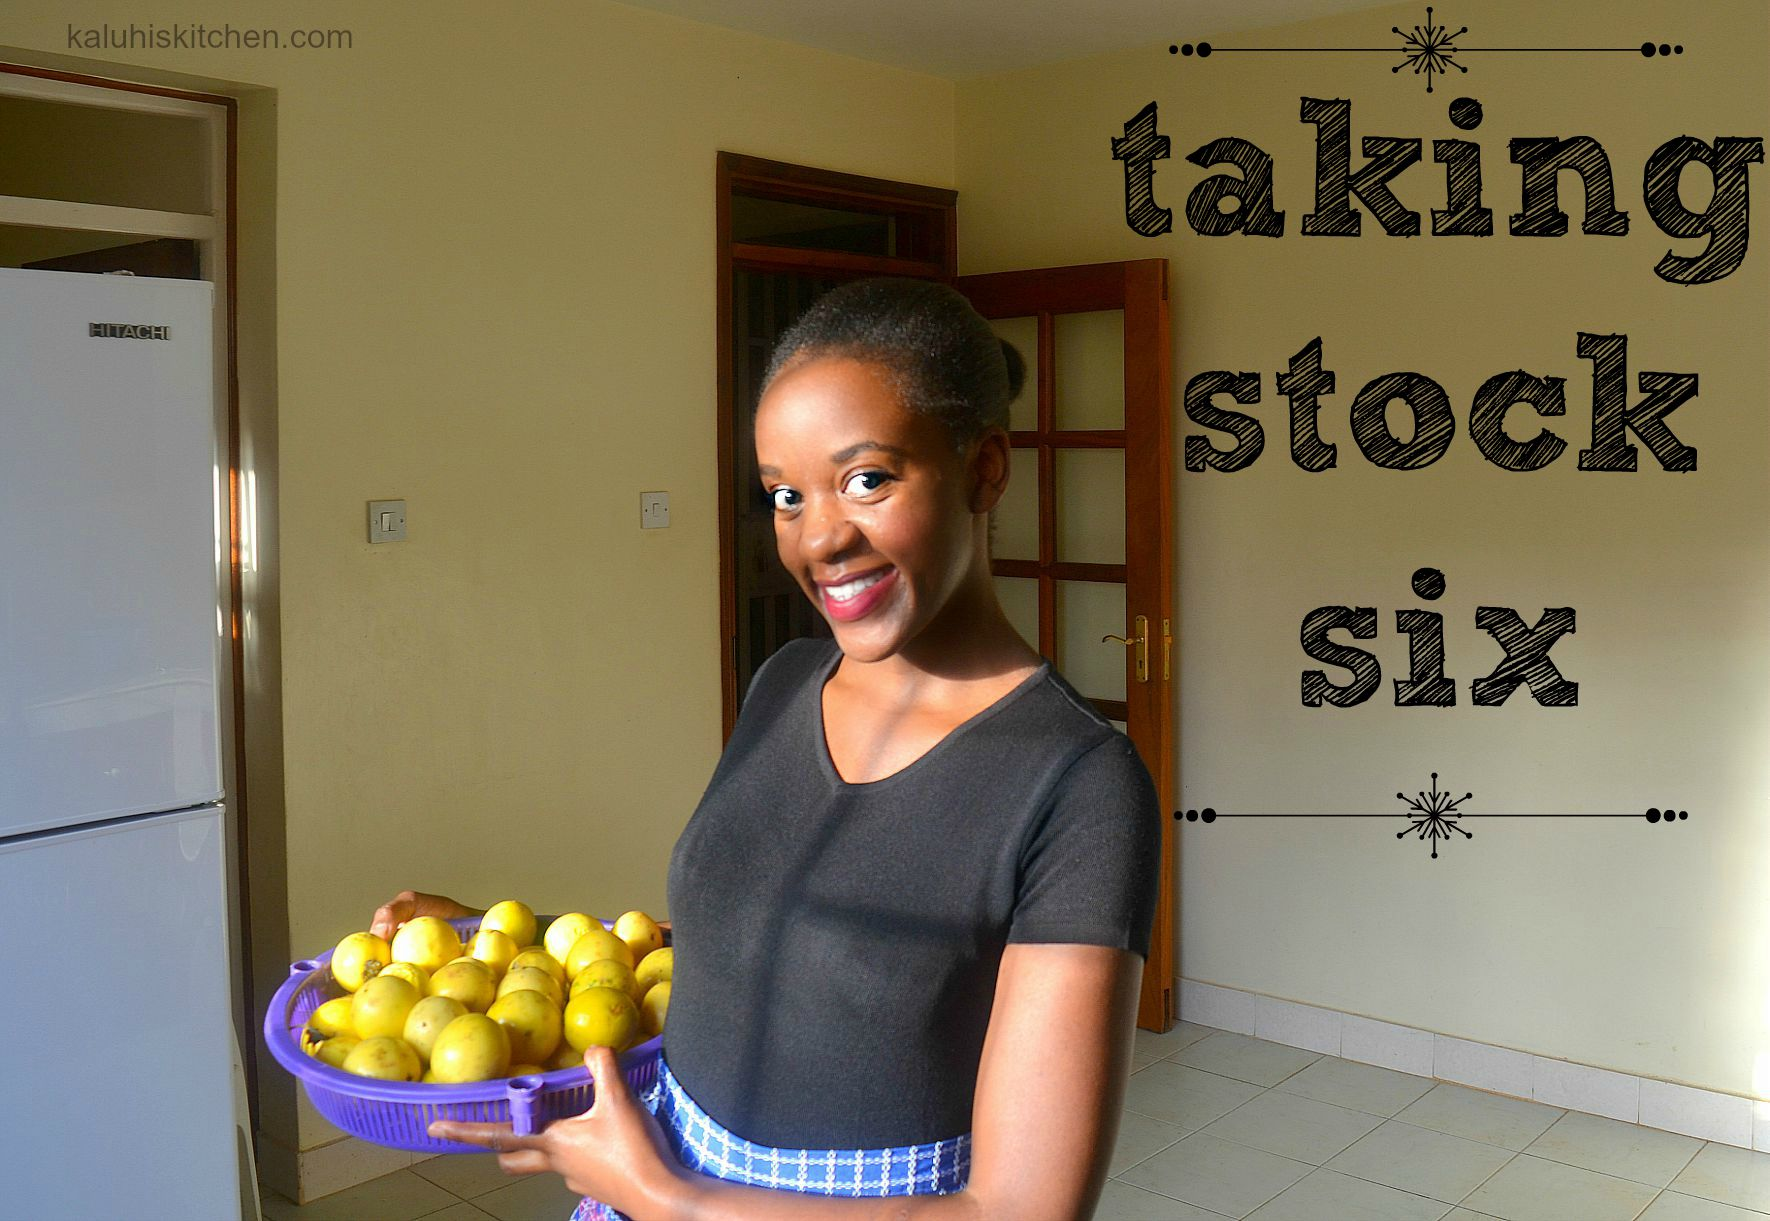 Kaluhi Adagala, author and creative at kaluhiskitchen.com_taking stock 6_kenyan food bloggers_top kenyan food blogs